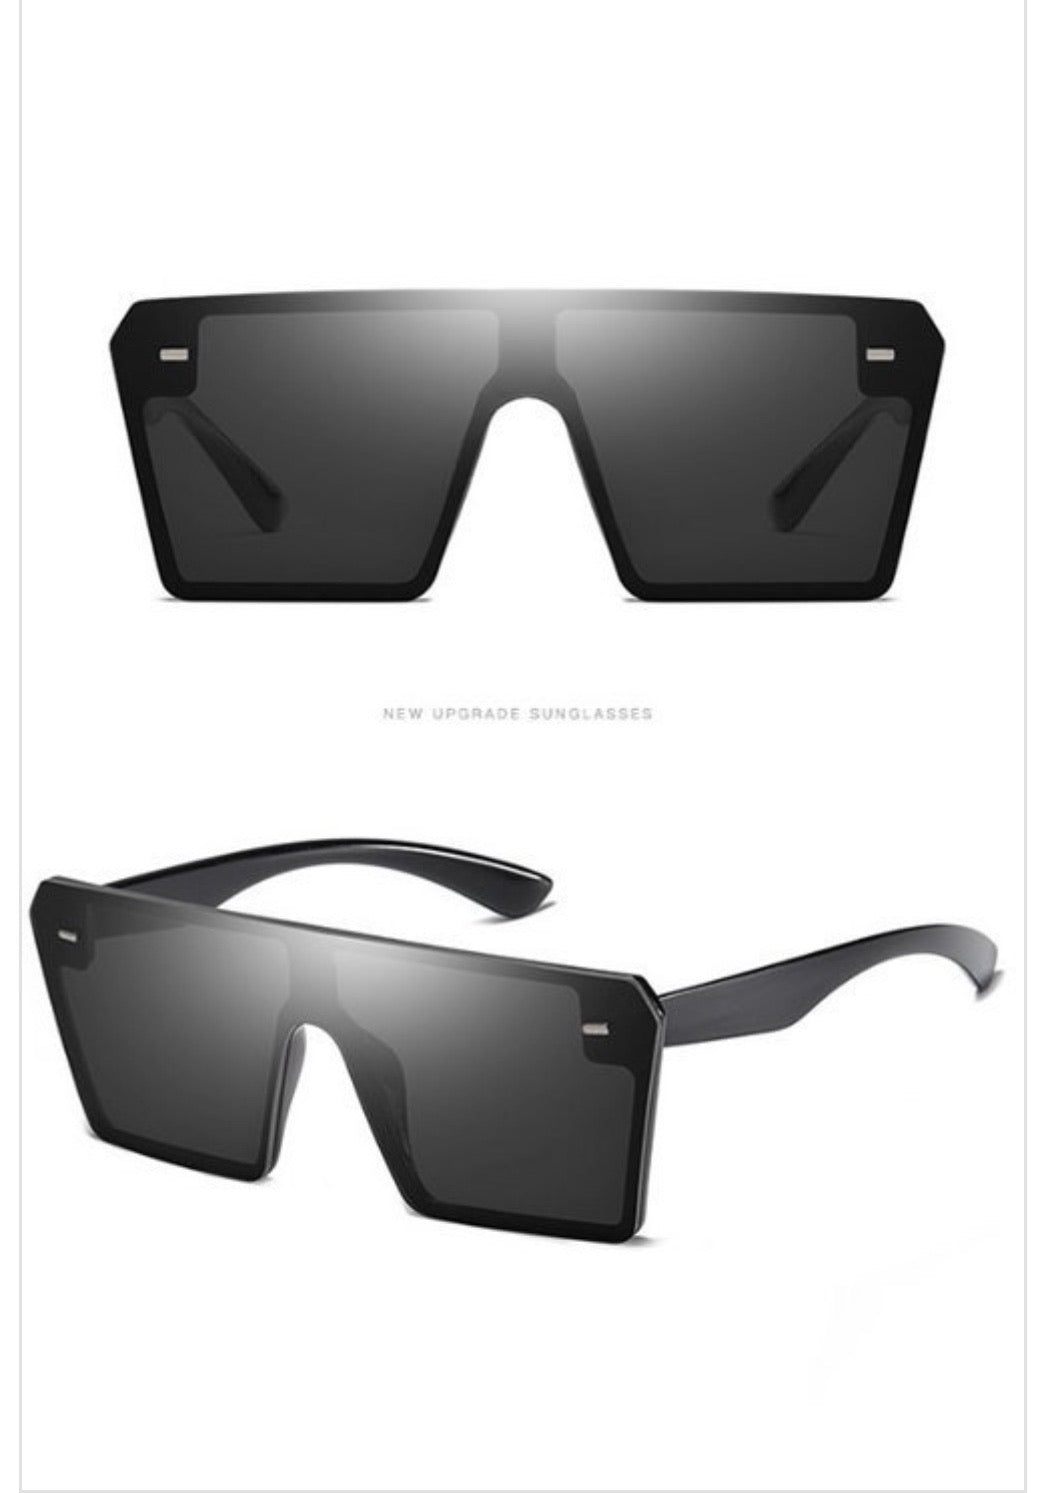 Upgrade shades (black)